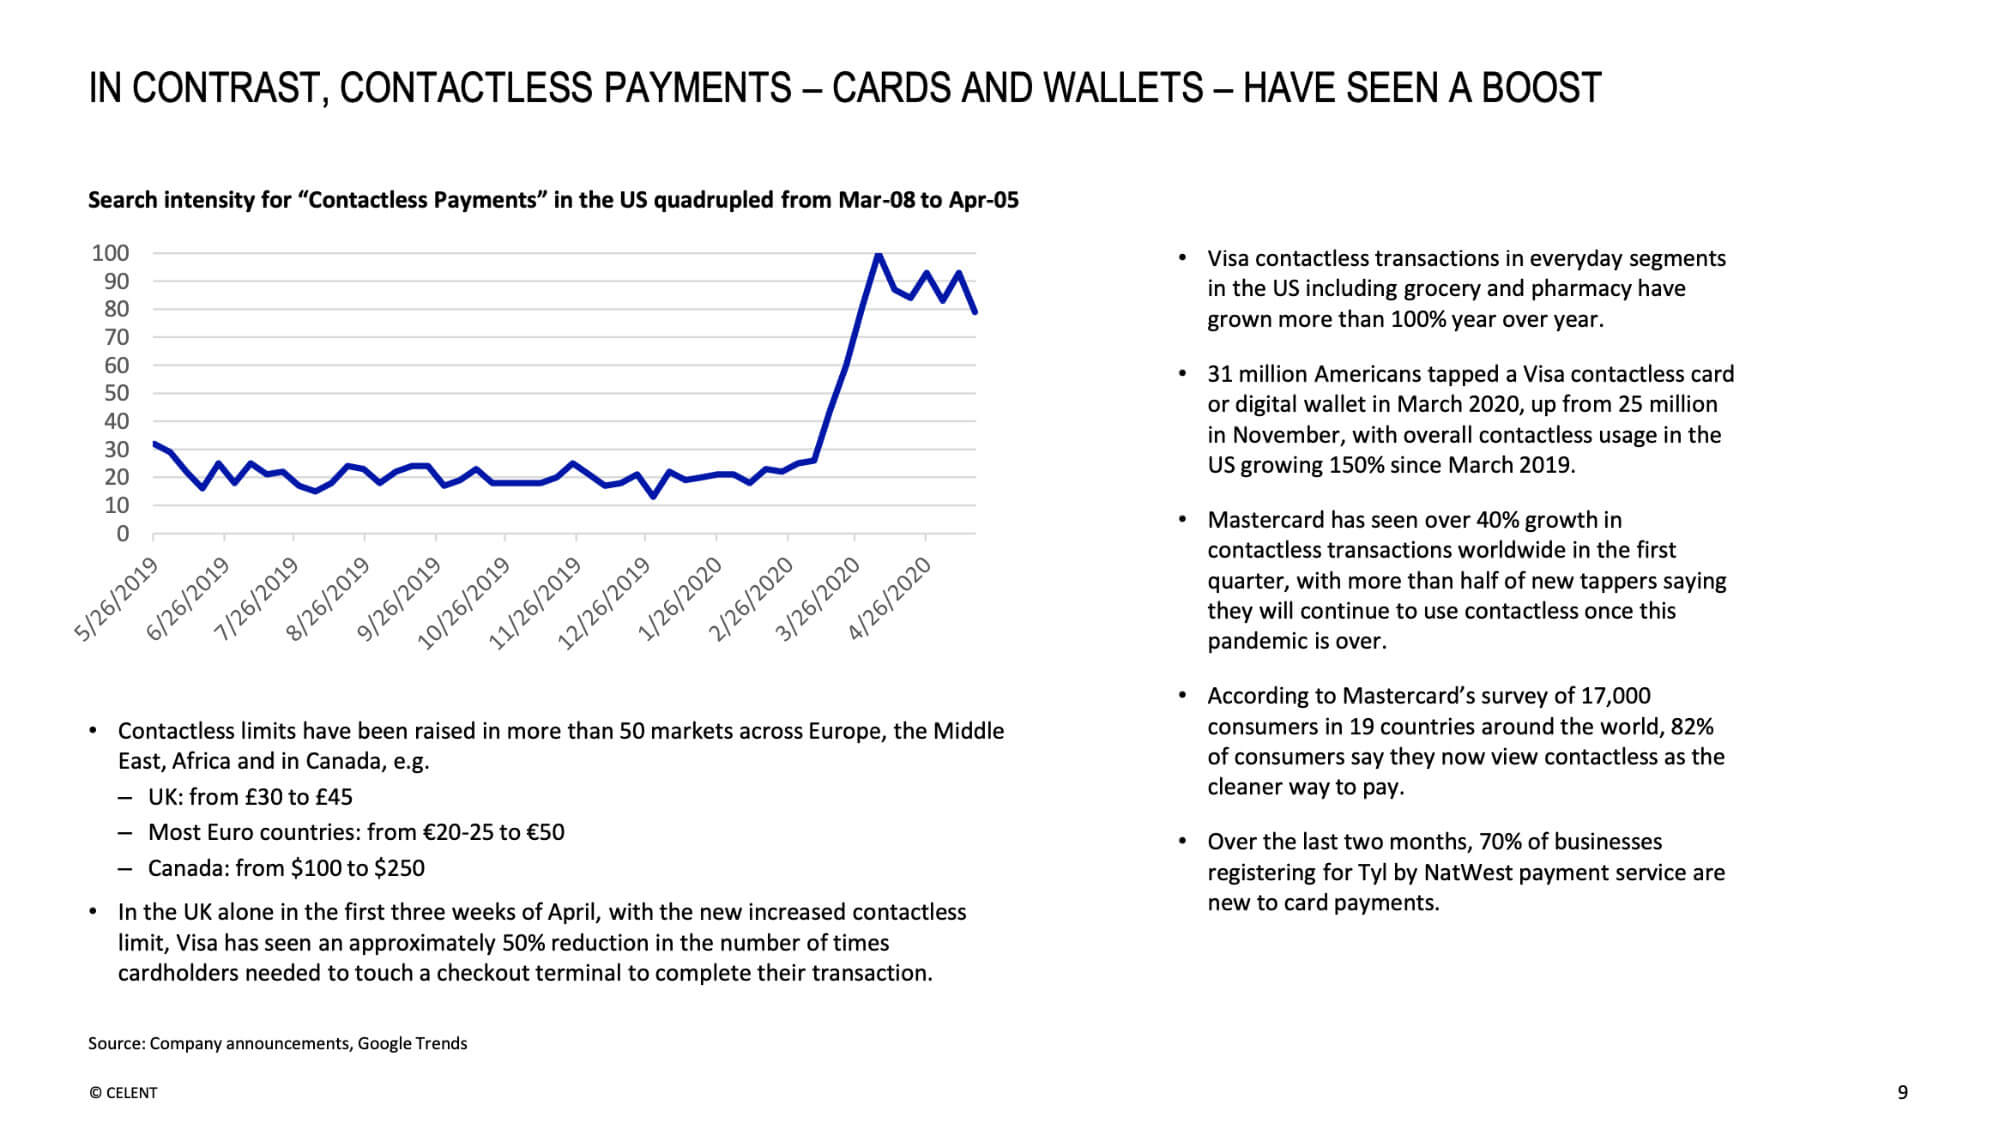 In contrast, contactless payments - cards and wallets - have seen a boost